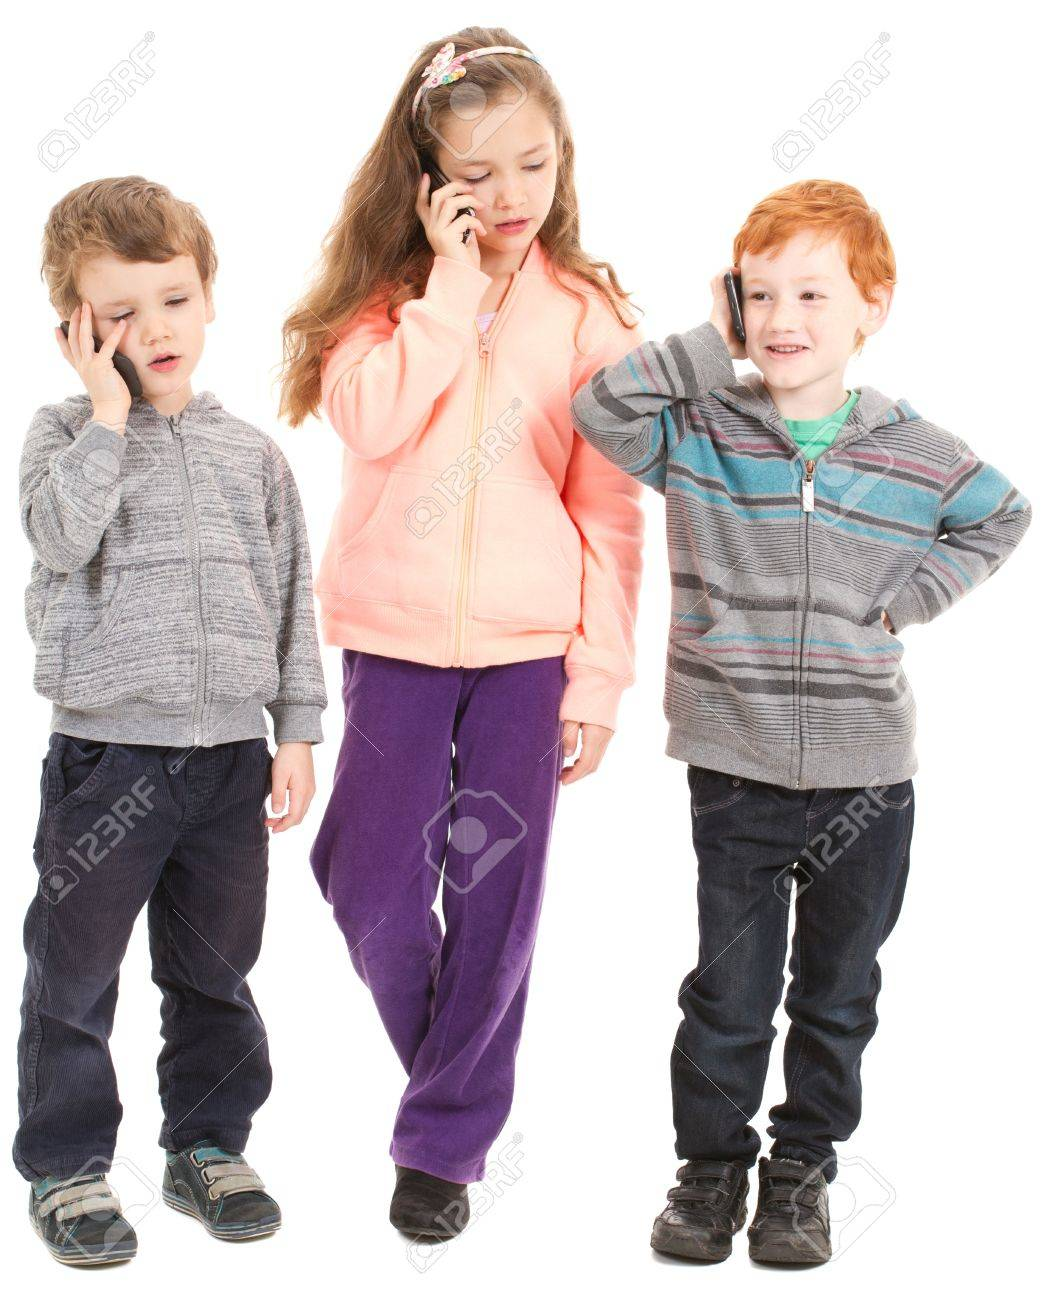 Group of three children talking on kids mobile phones. Isolated on white. - 20174631